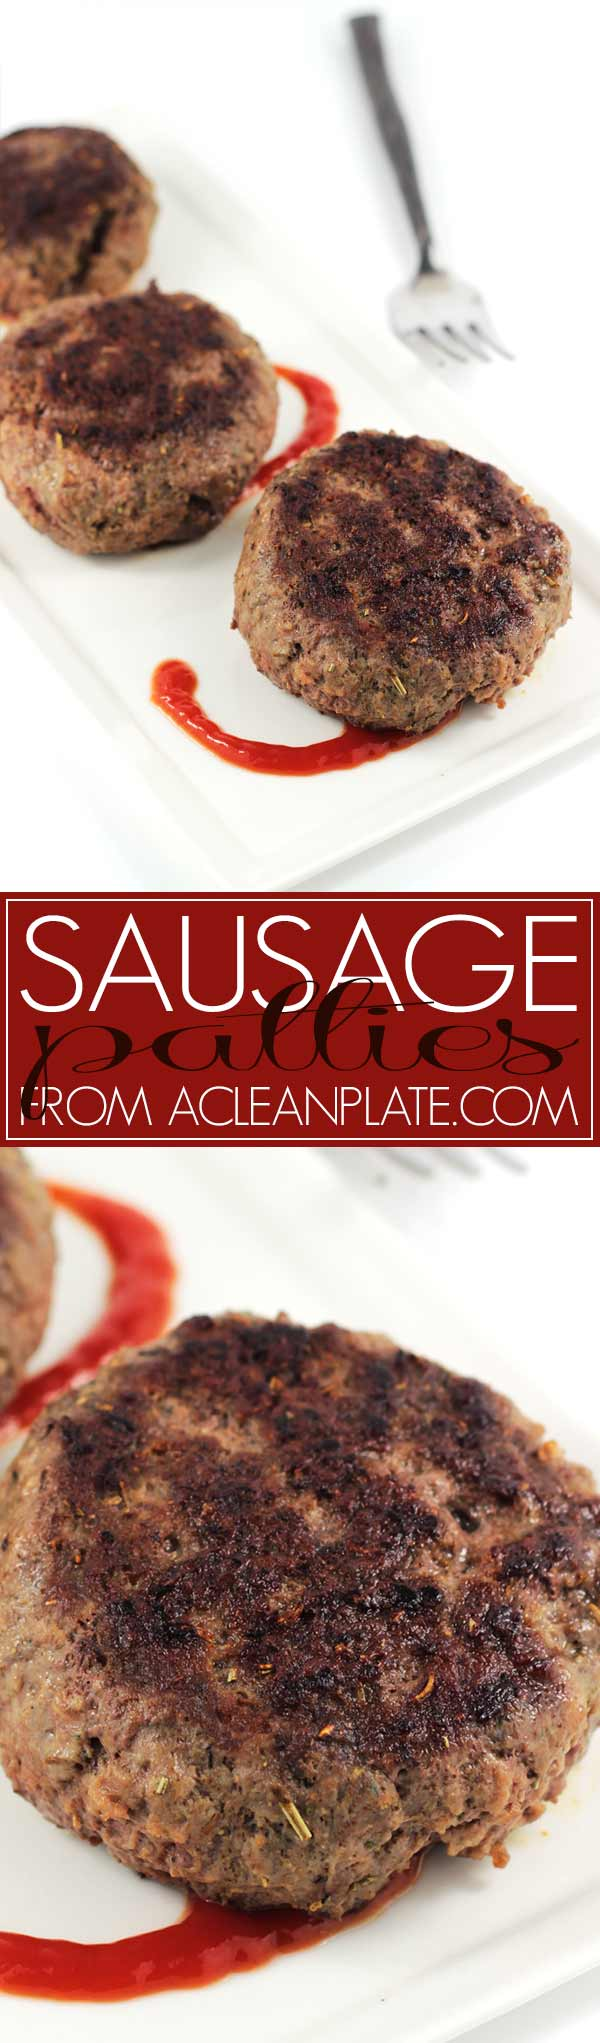 how to cook sausage patties